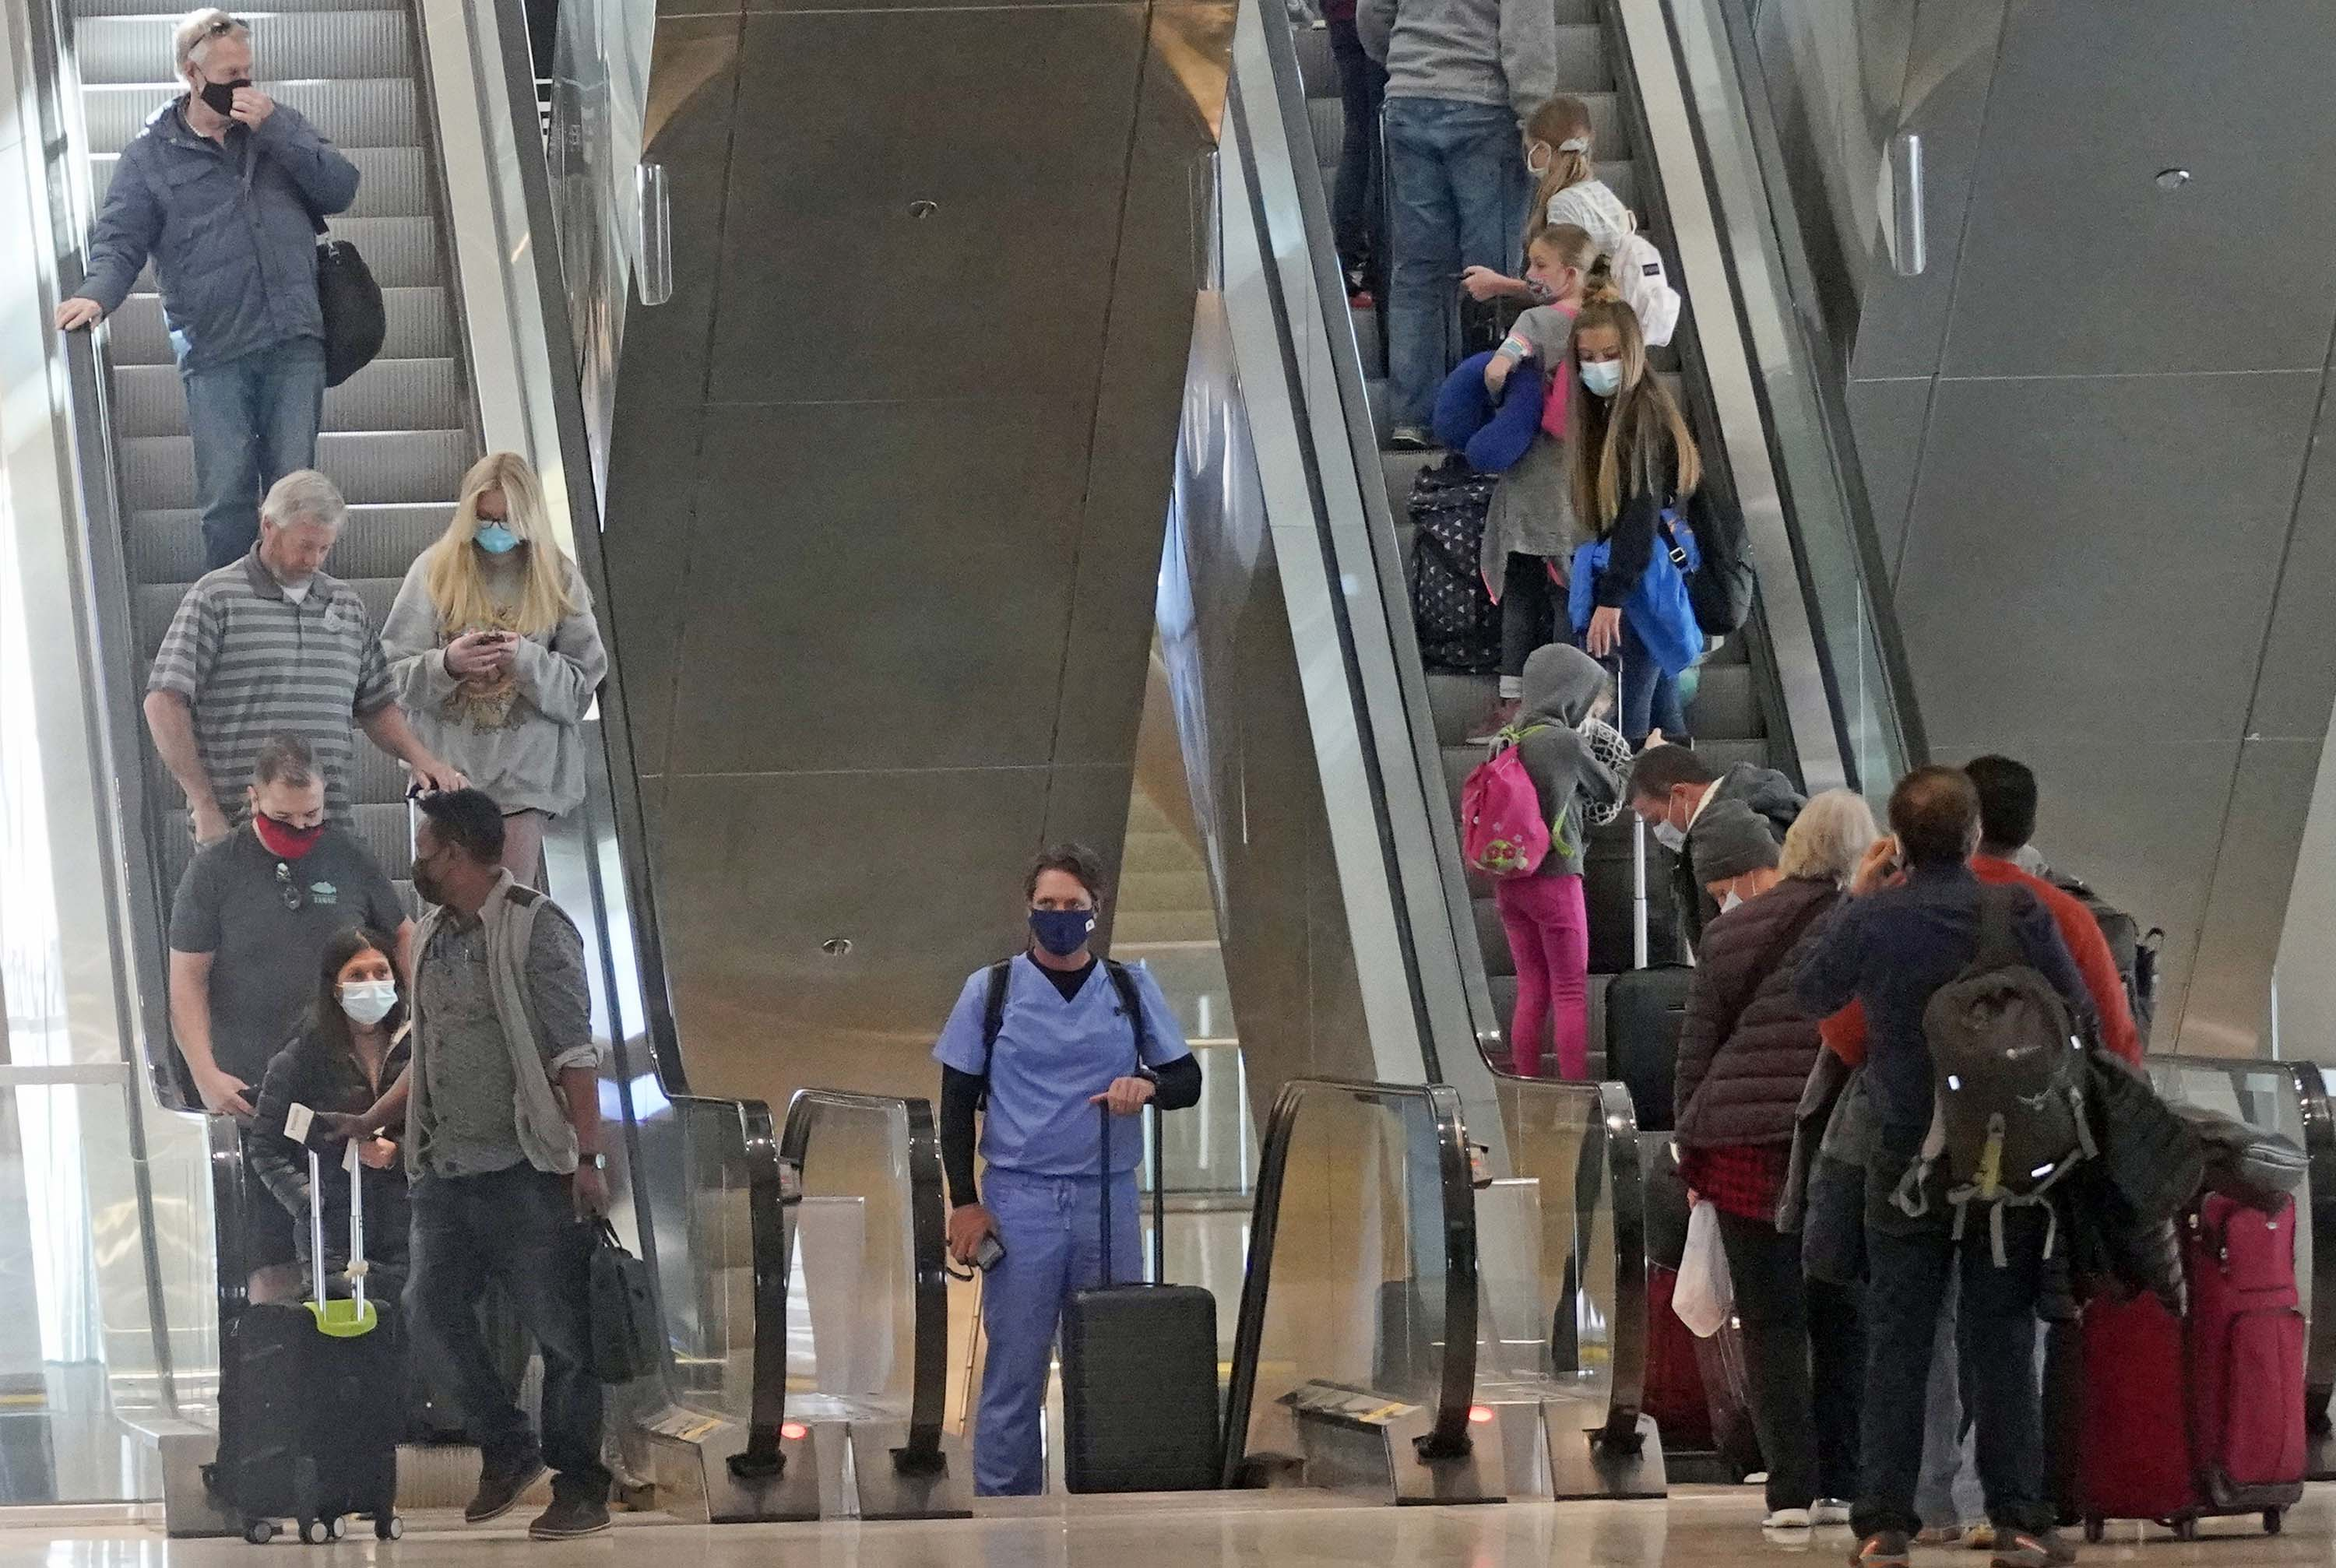 Travelers are seen at Salt Lake City International Airport in Utah, on Wednesday, March 17.